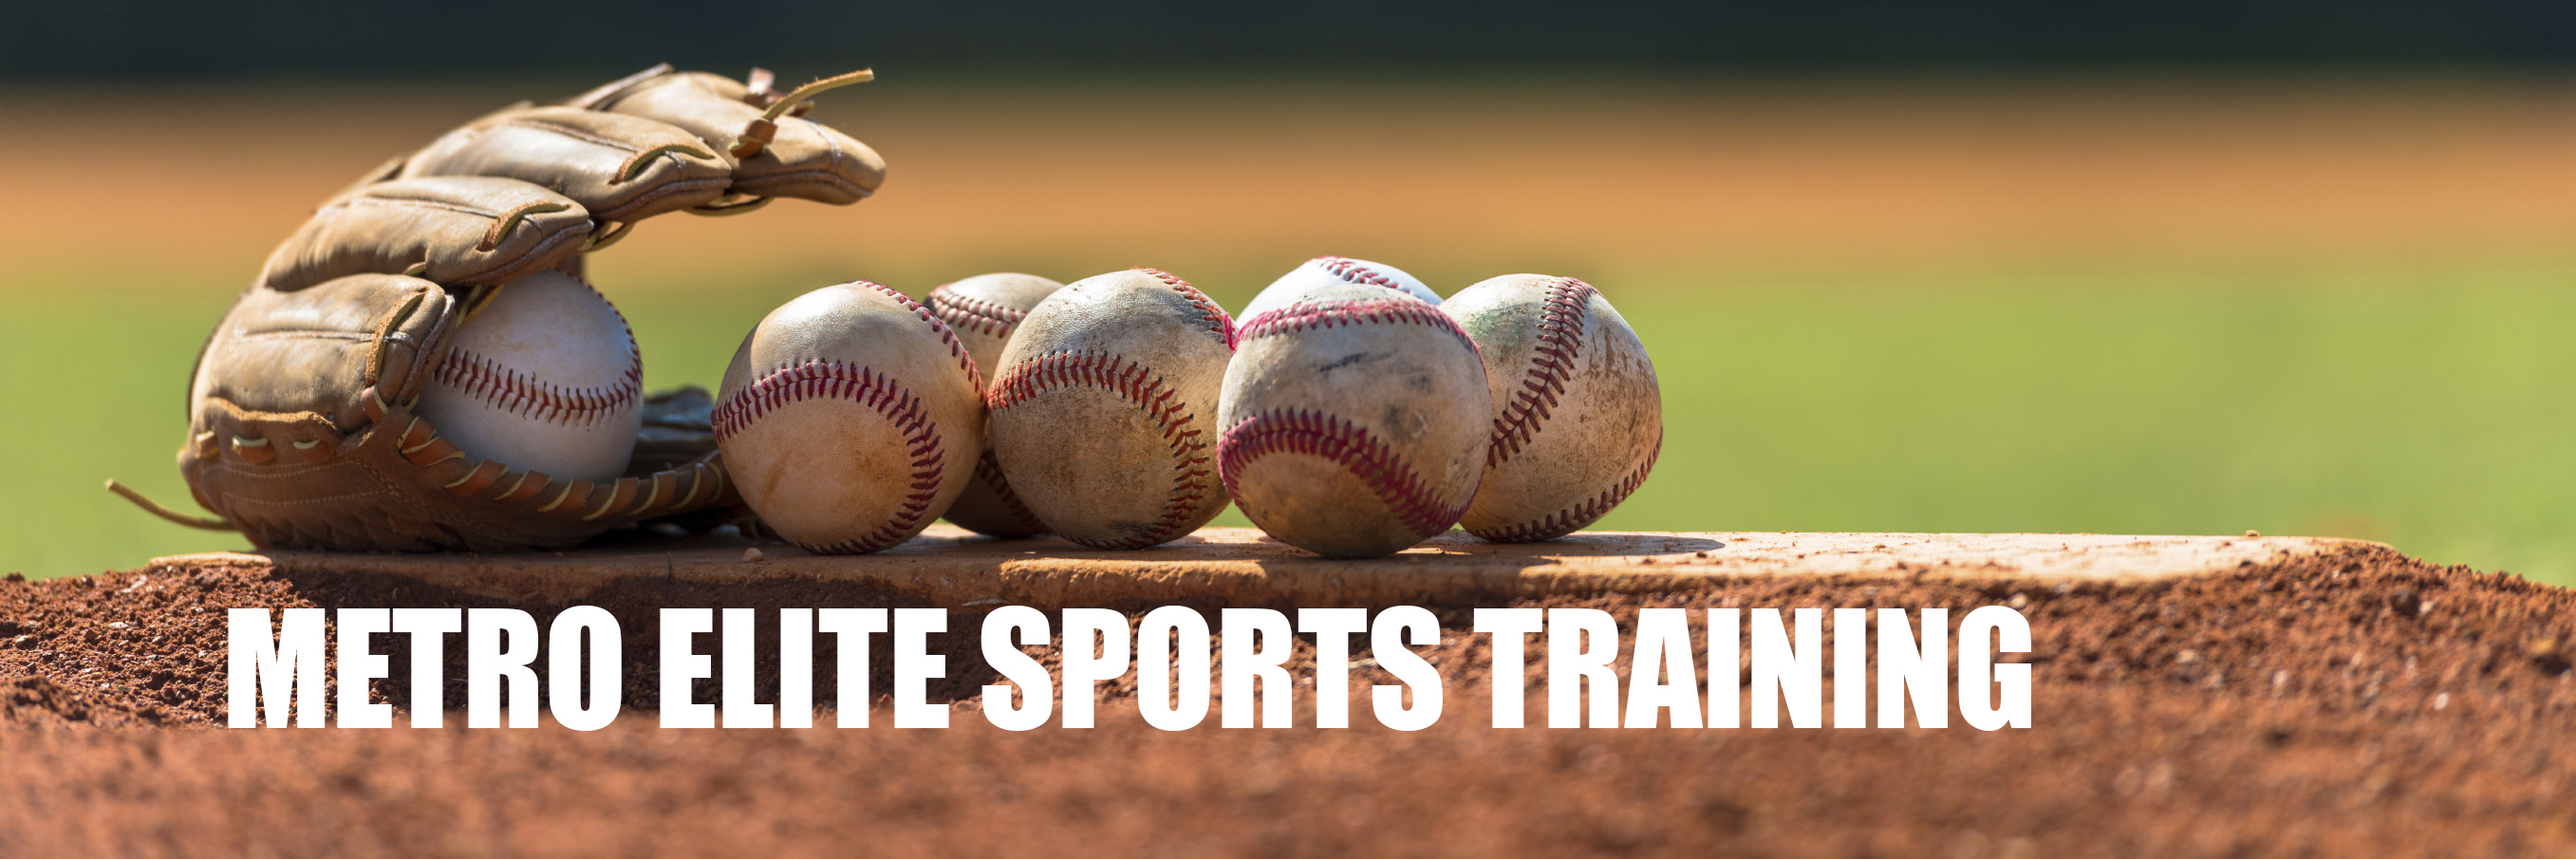 Metro Elite Sports Training, Baseball, Run, Field